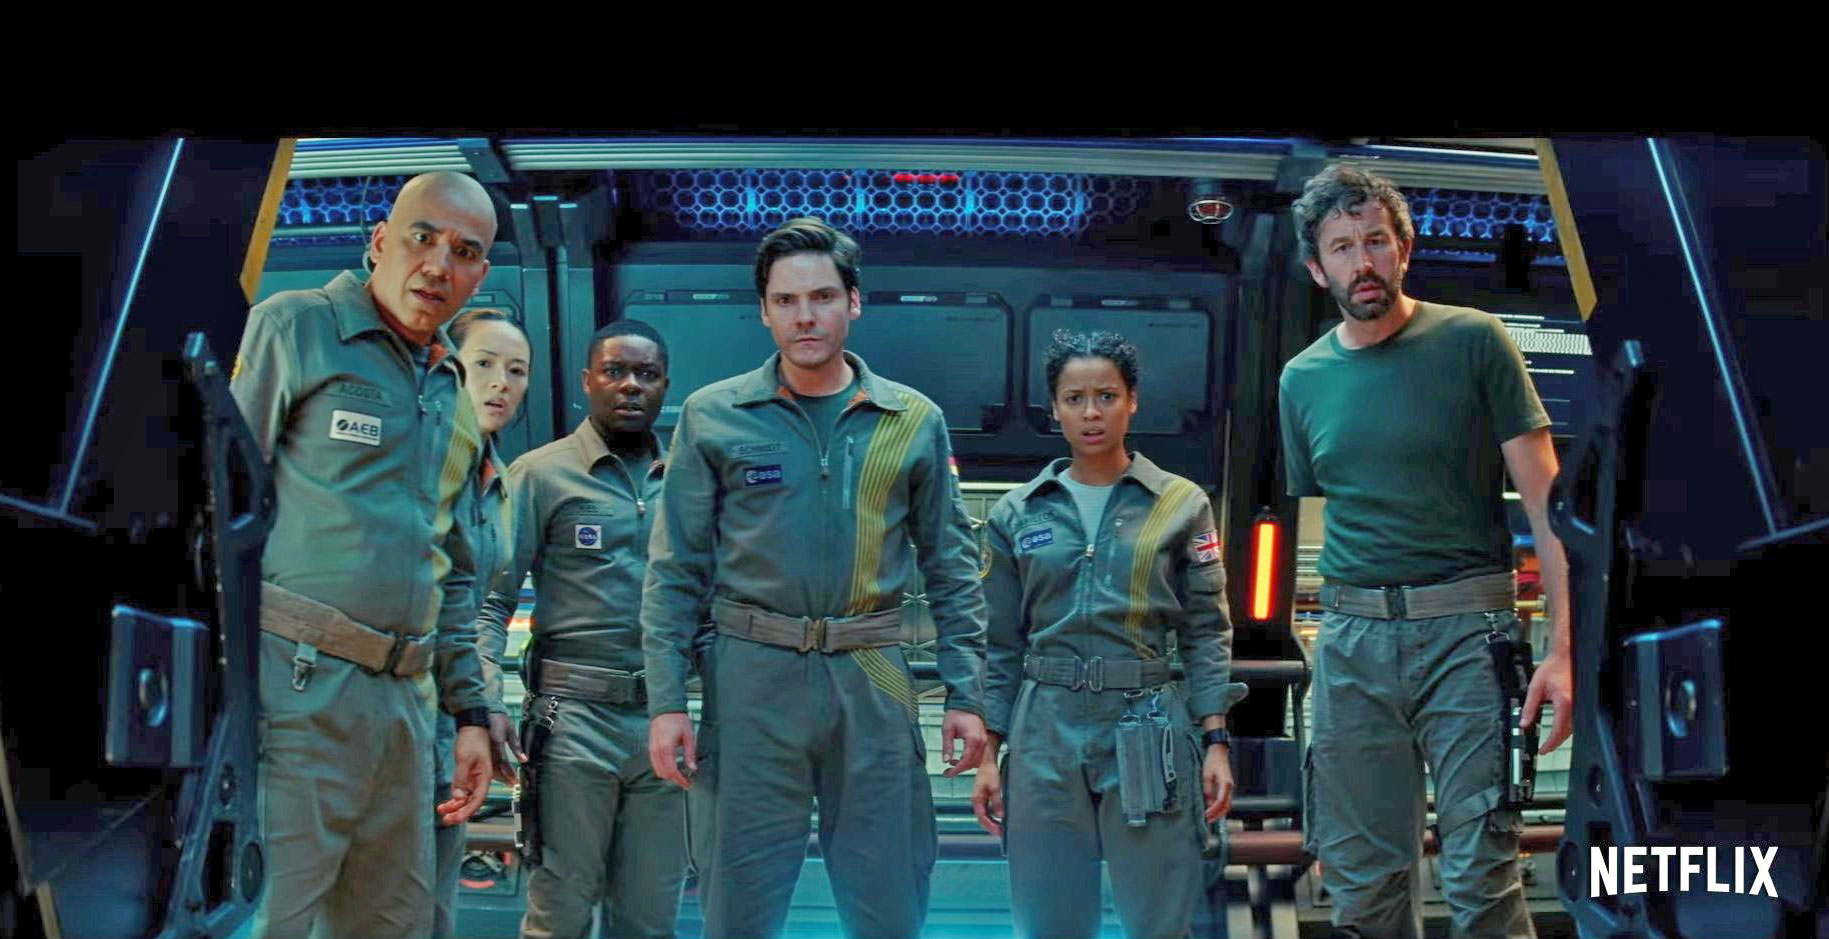 The Cloverfield Paradox the station's crew looks collectively into a hallway